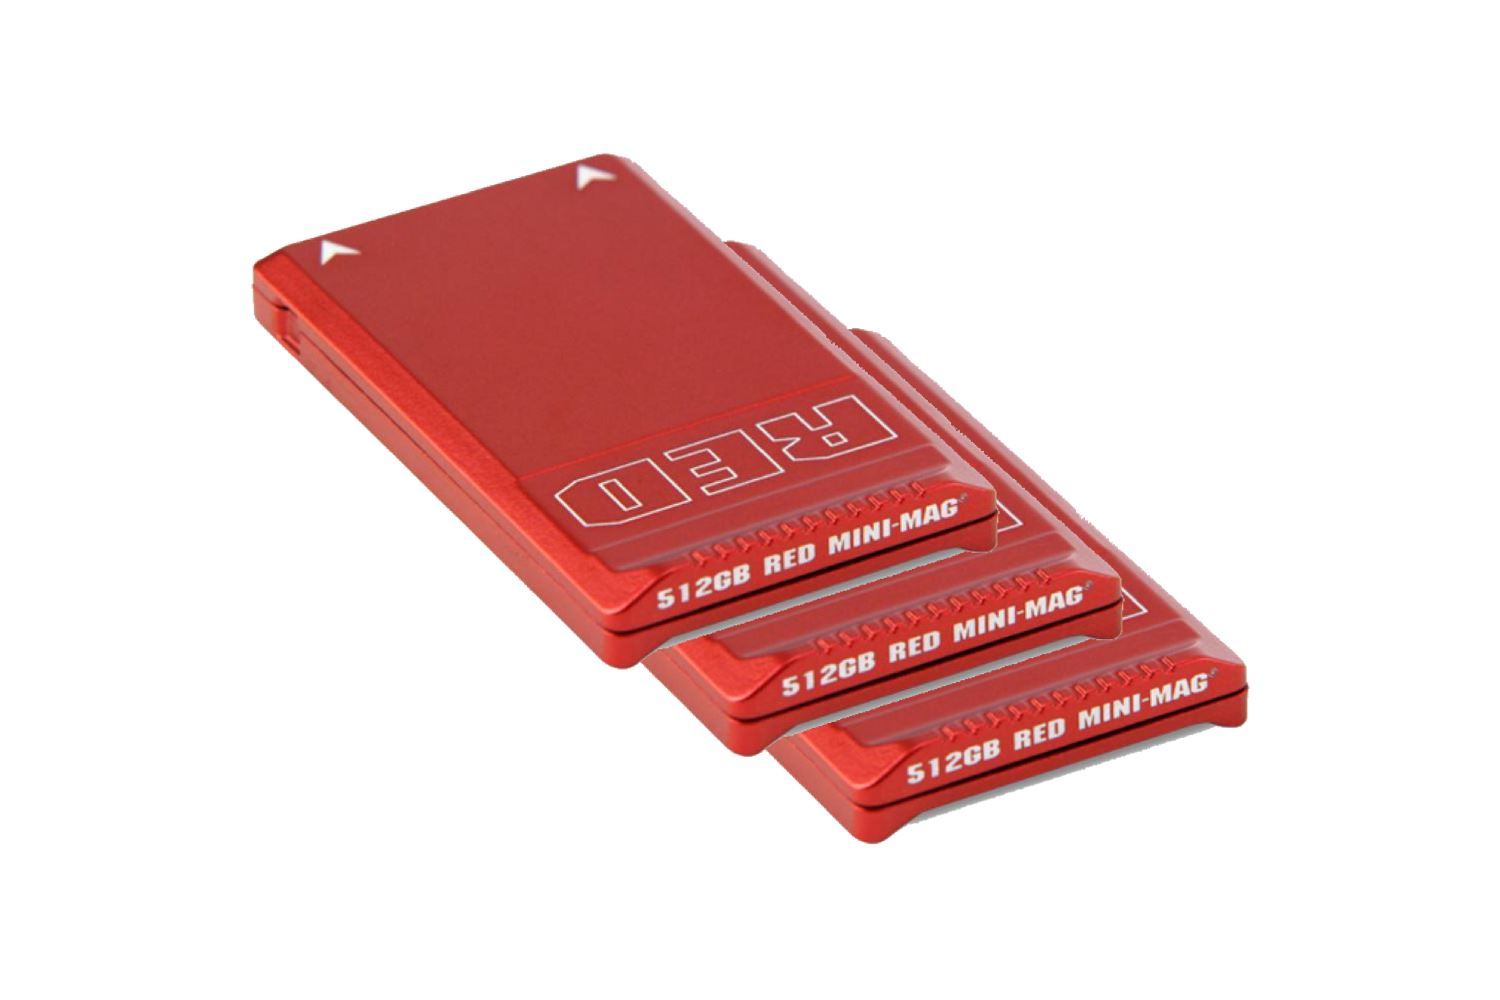 RED MINI-MAG SSD 512 GB 3 Piece Set - 400 EUR/day, 1200 EUR/week